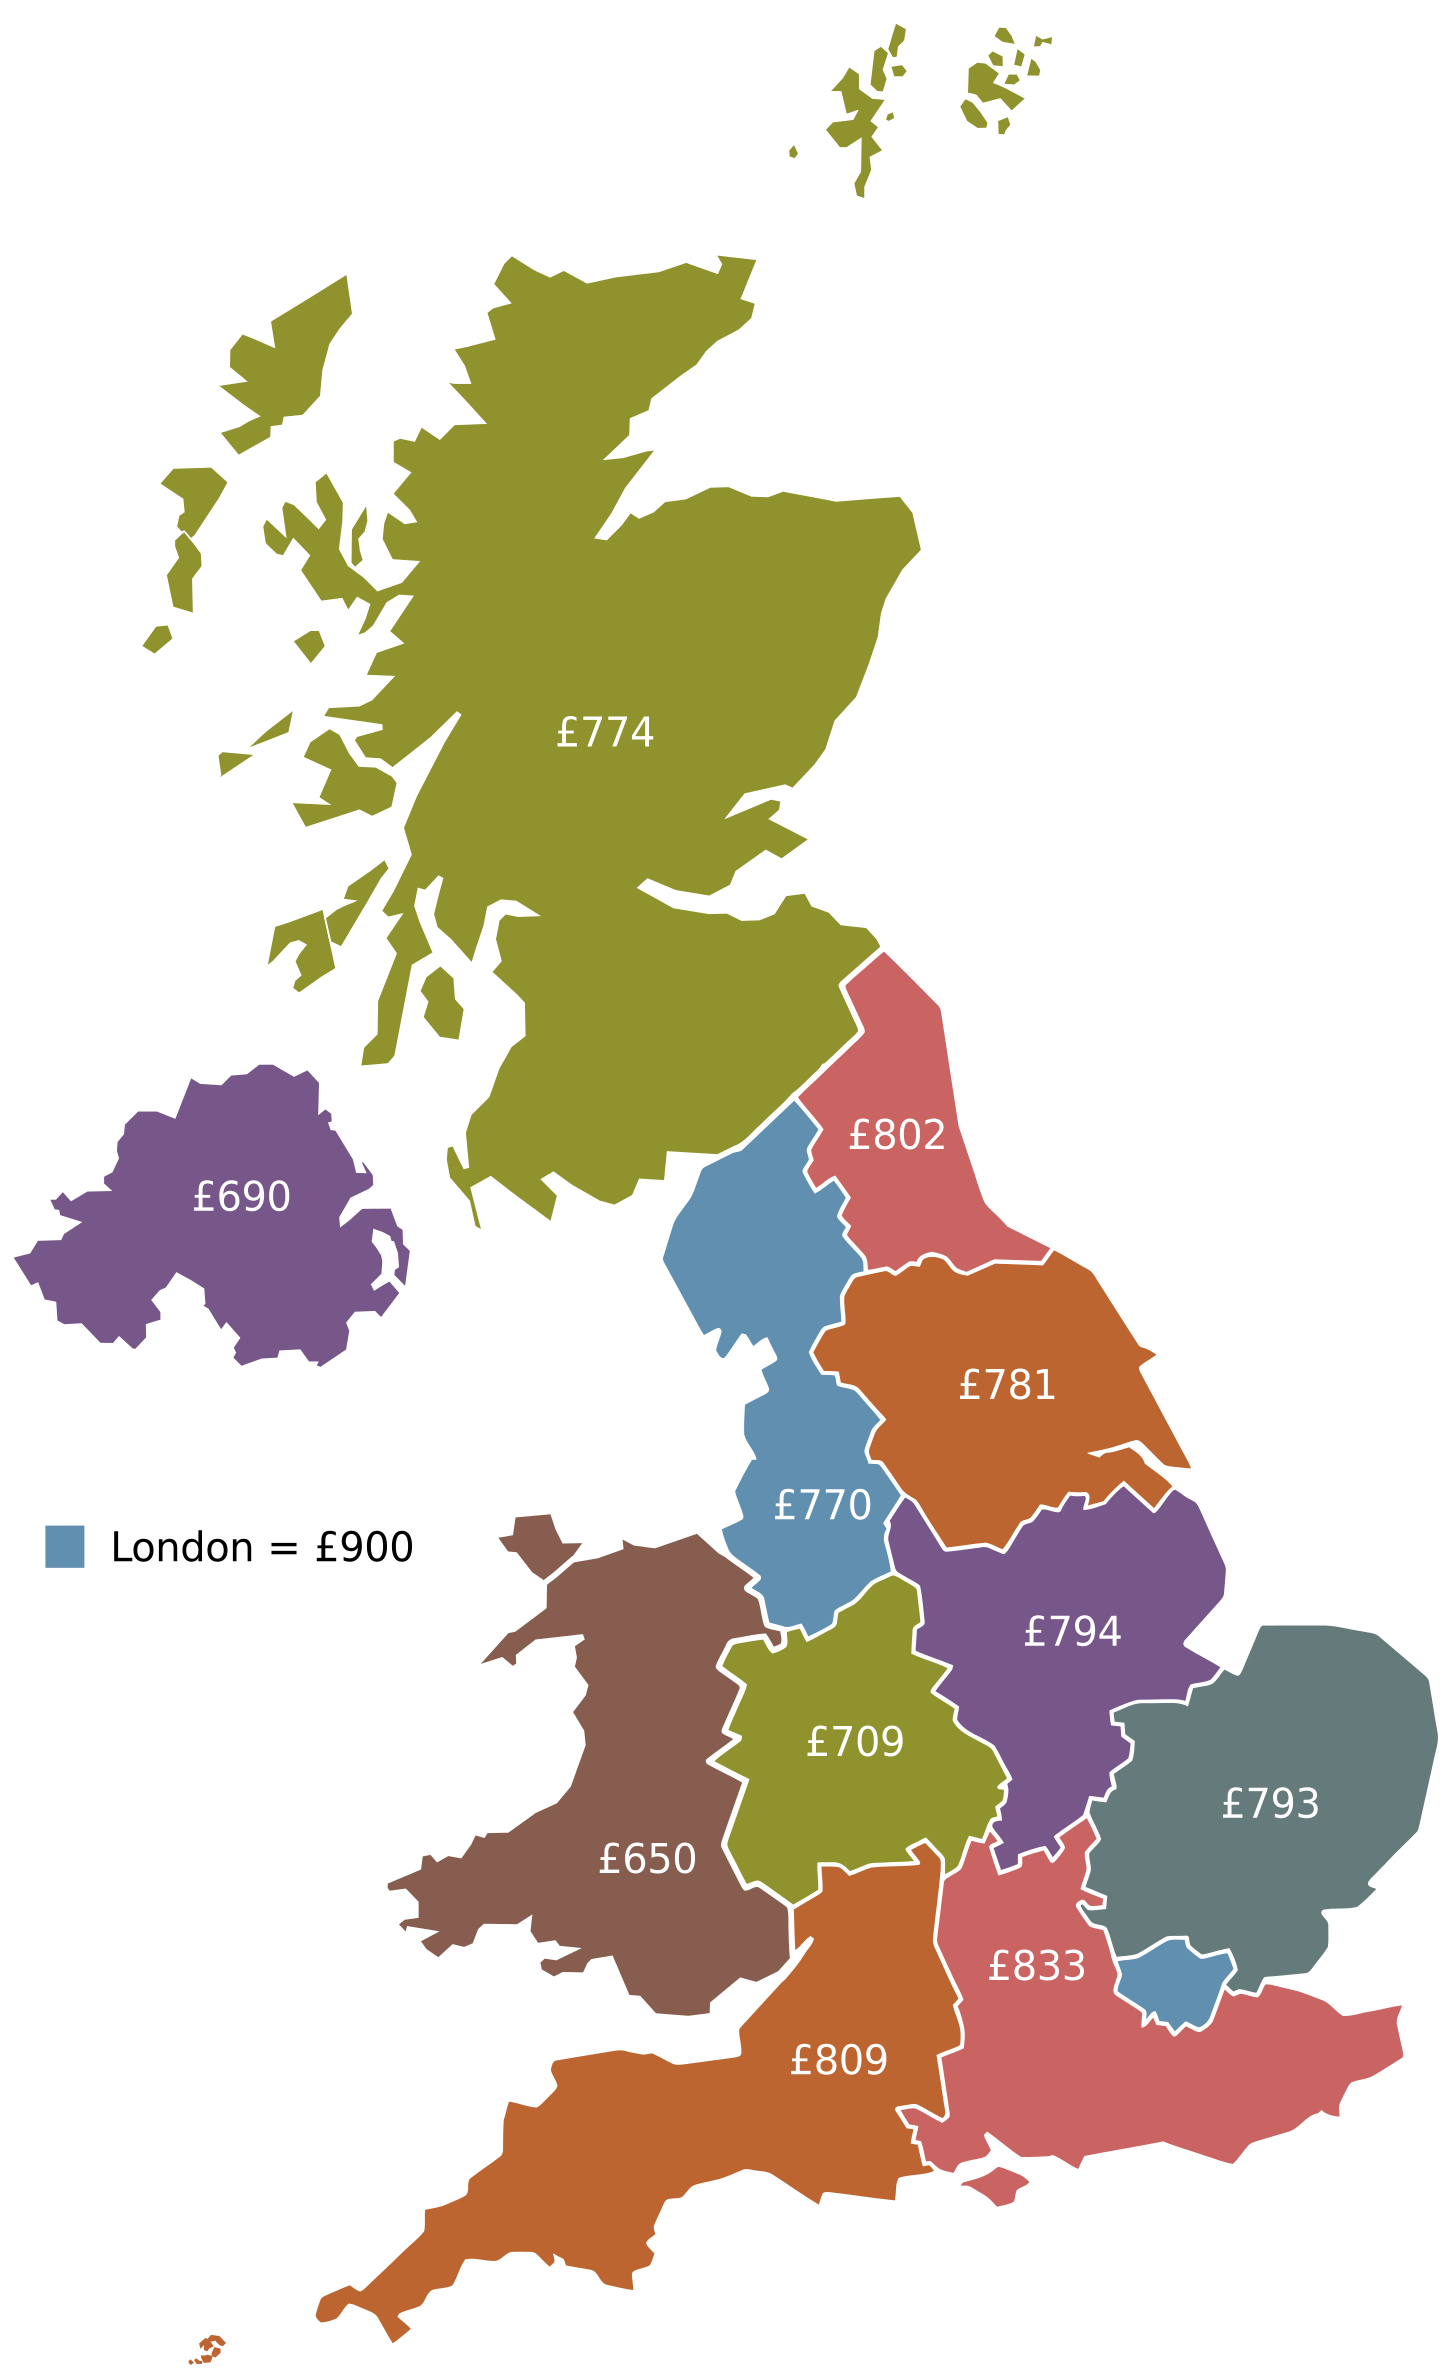 Illustration of a university student's spend per UK area